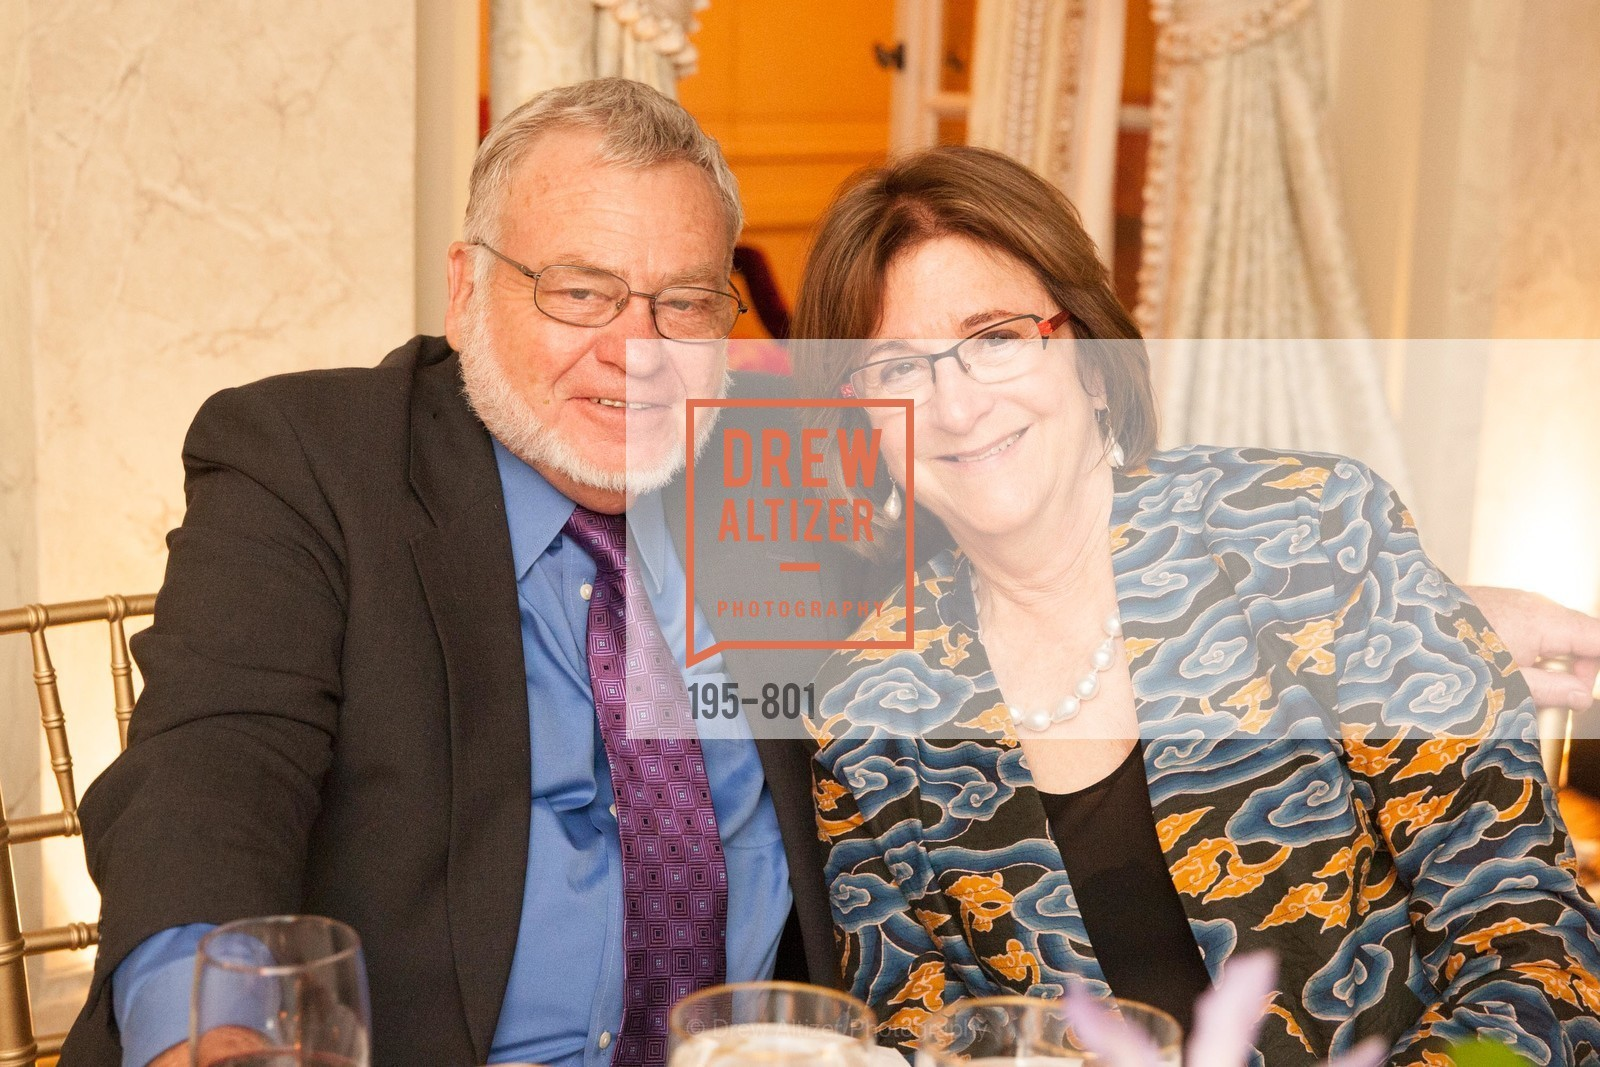 Jack Harris, Alice Corning, GETTY Hosts Leakey Foundation Dinner, US, April 24th, 2015,Drew Altizer, Drew Altizer Photography, full-service agency, private events, San Francisco photographer, photographer california